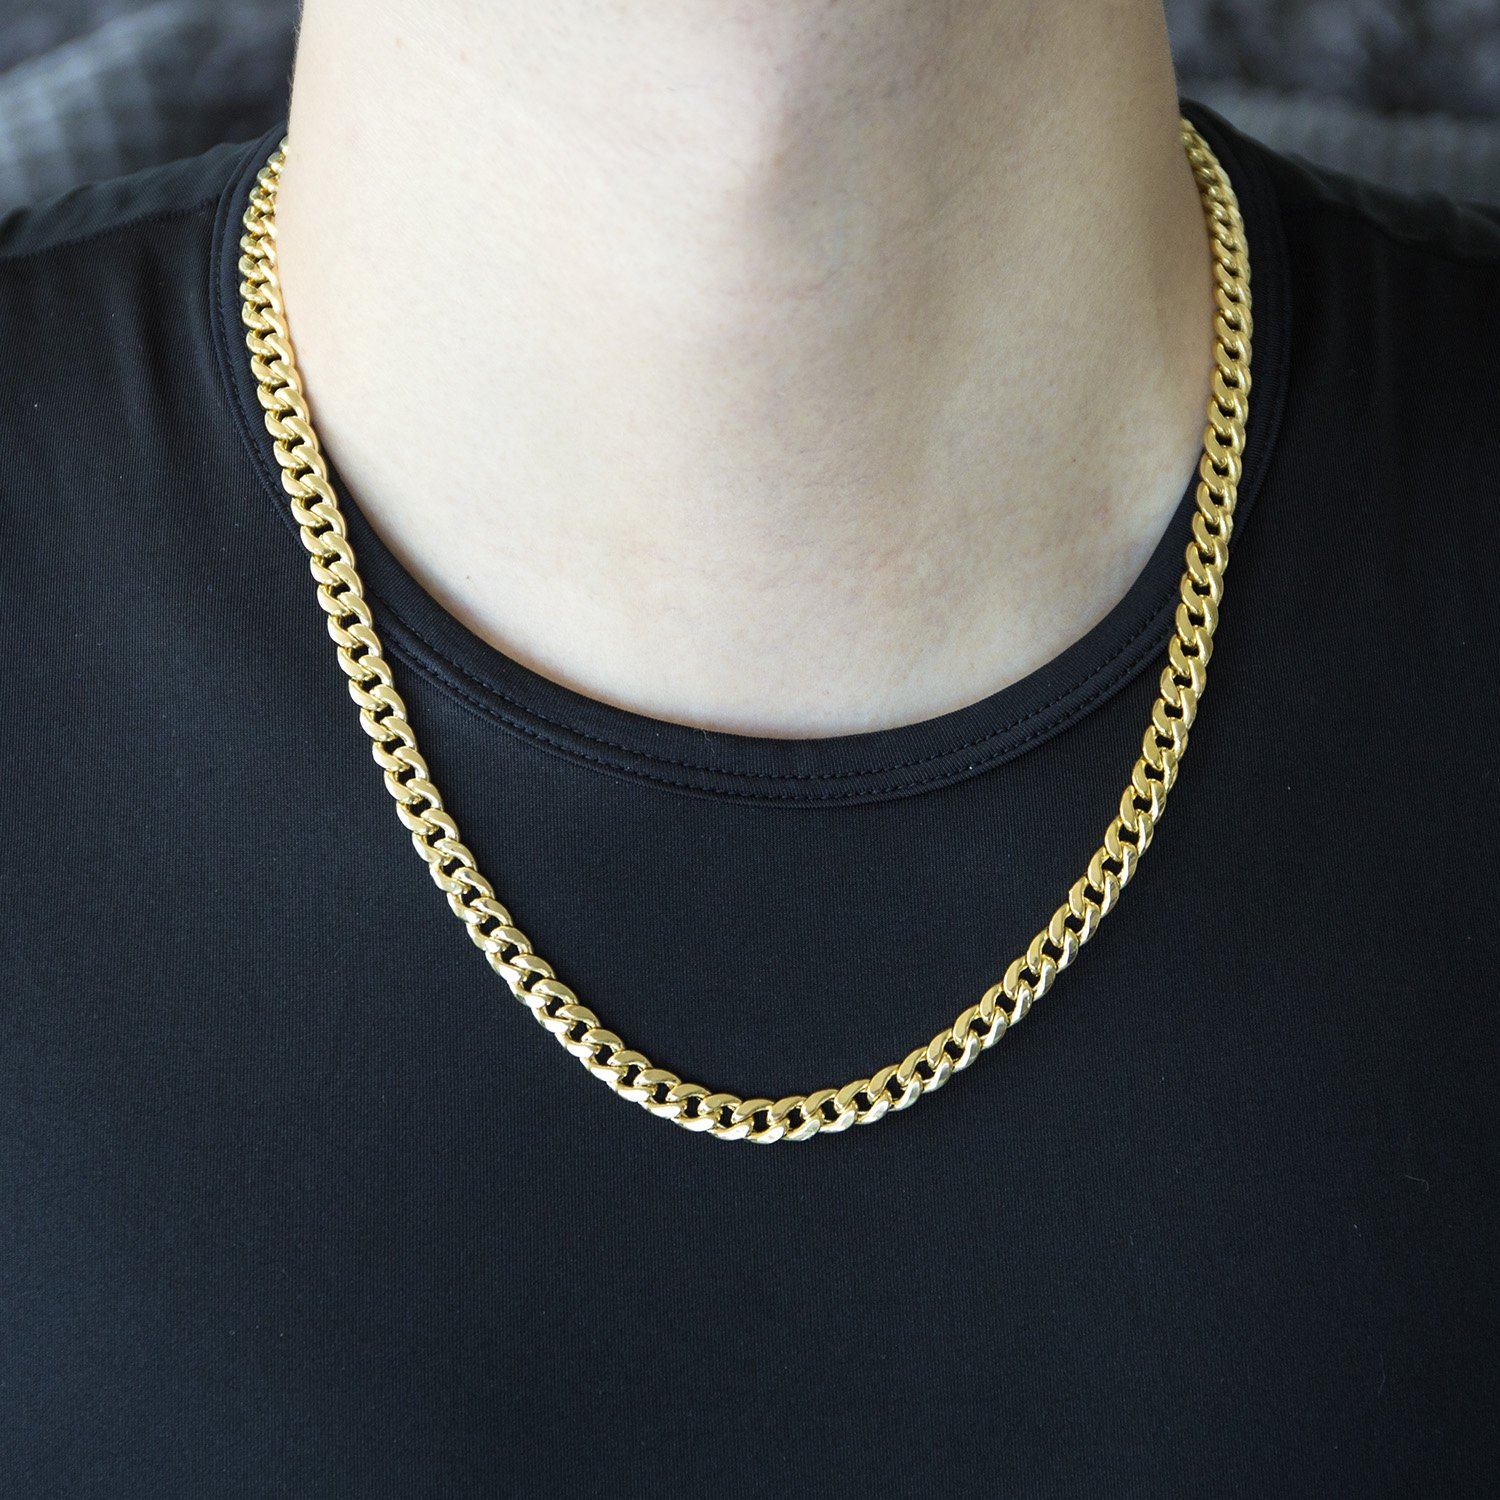 mens curb jewelry necklace dropship product cuban chain watch wholesale boys shop trendsmax link gold filled